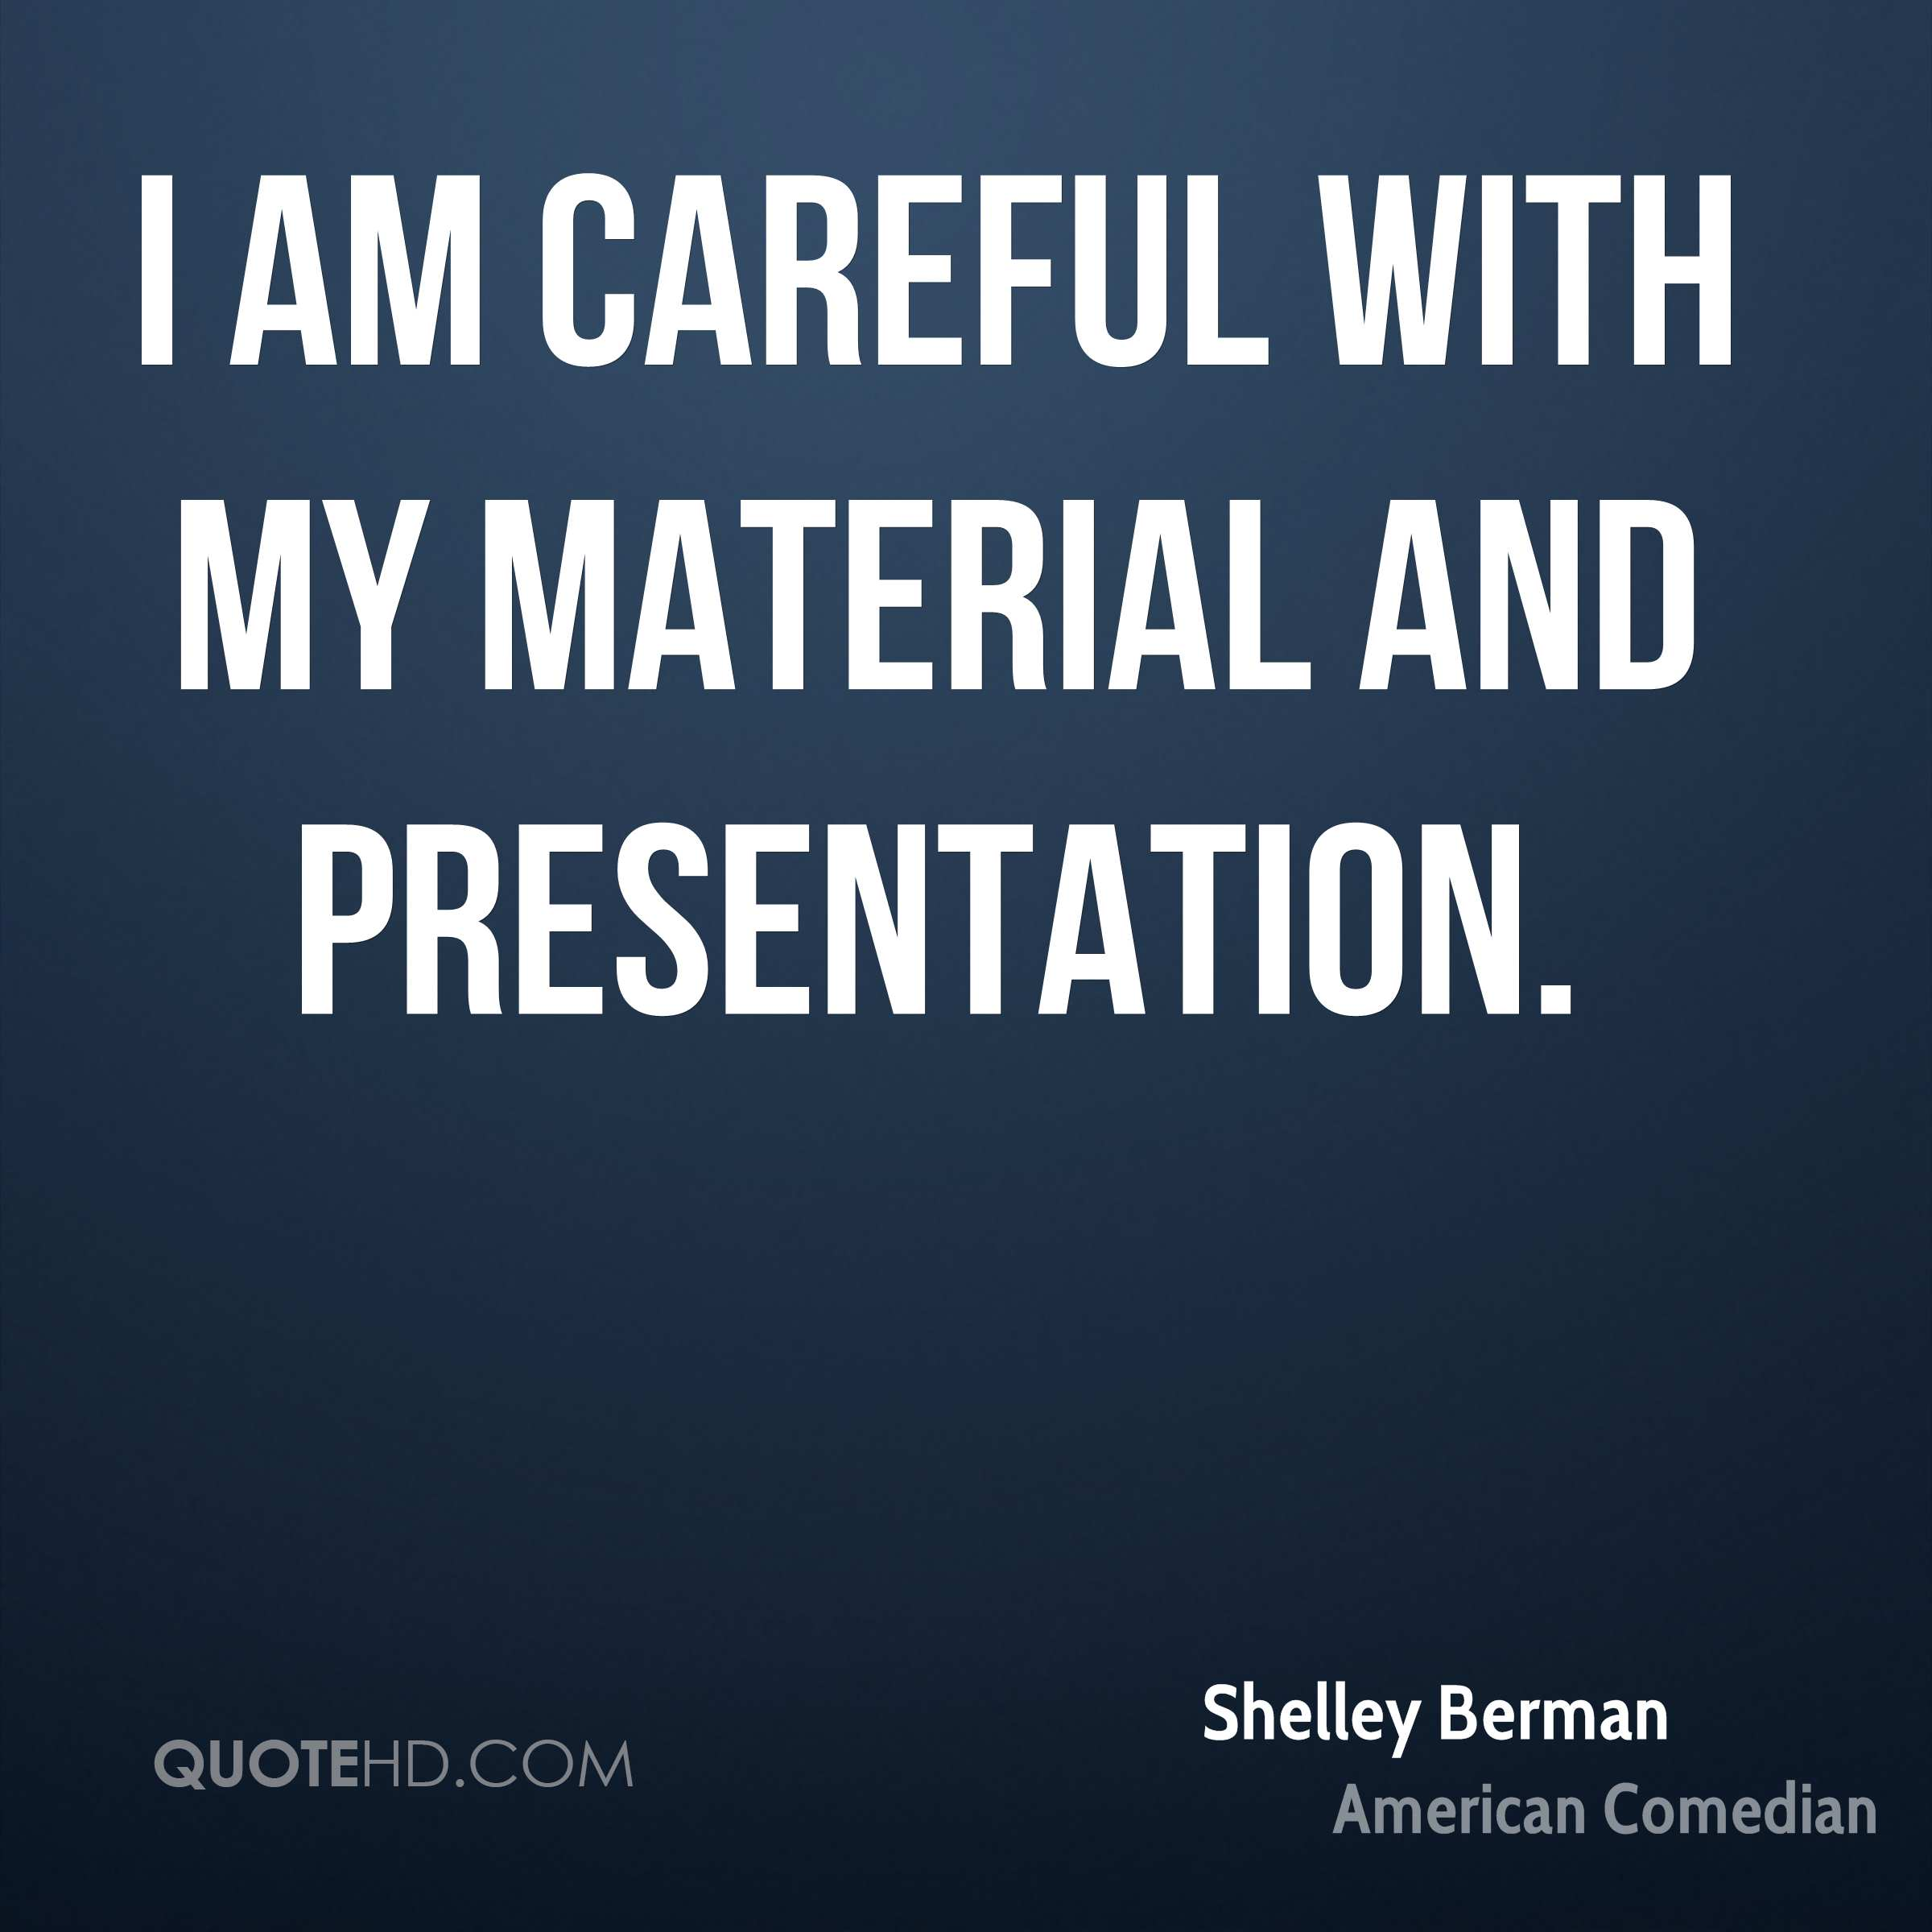 I am careful with my material and presentation.